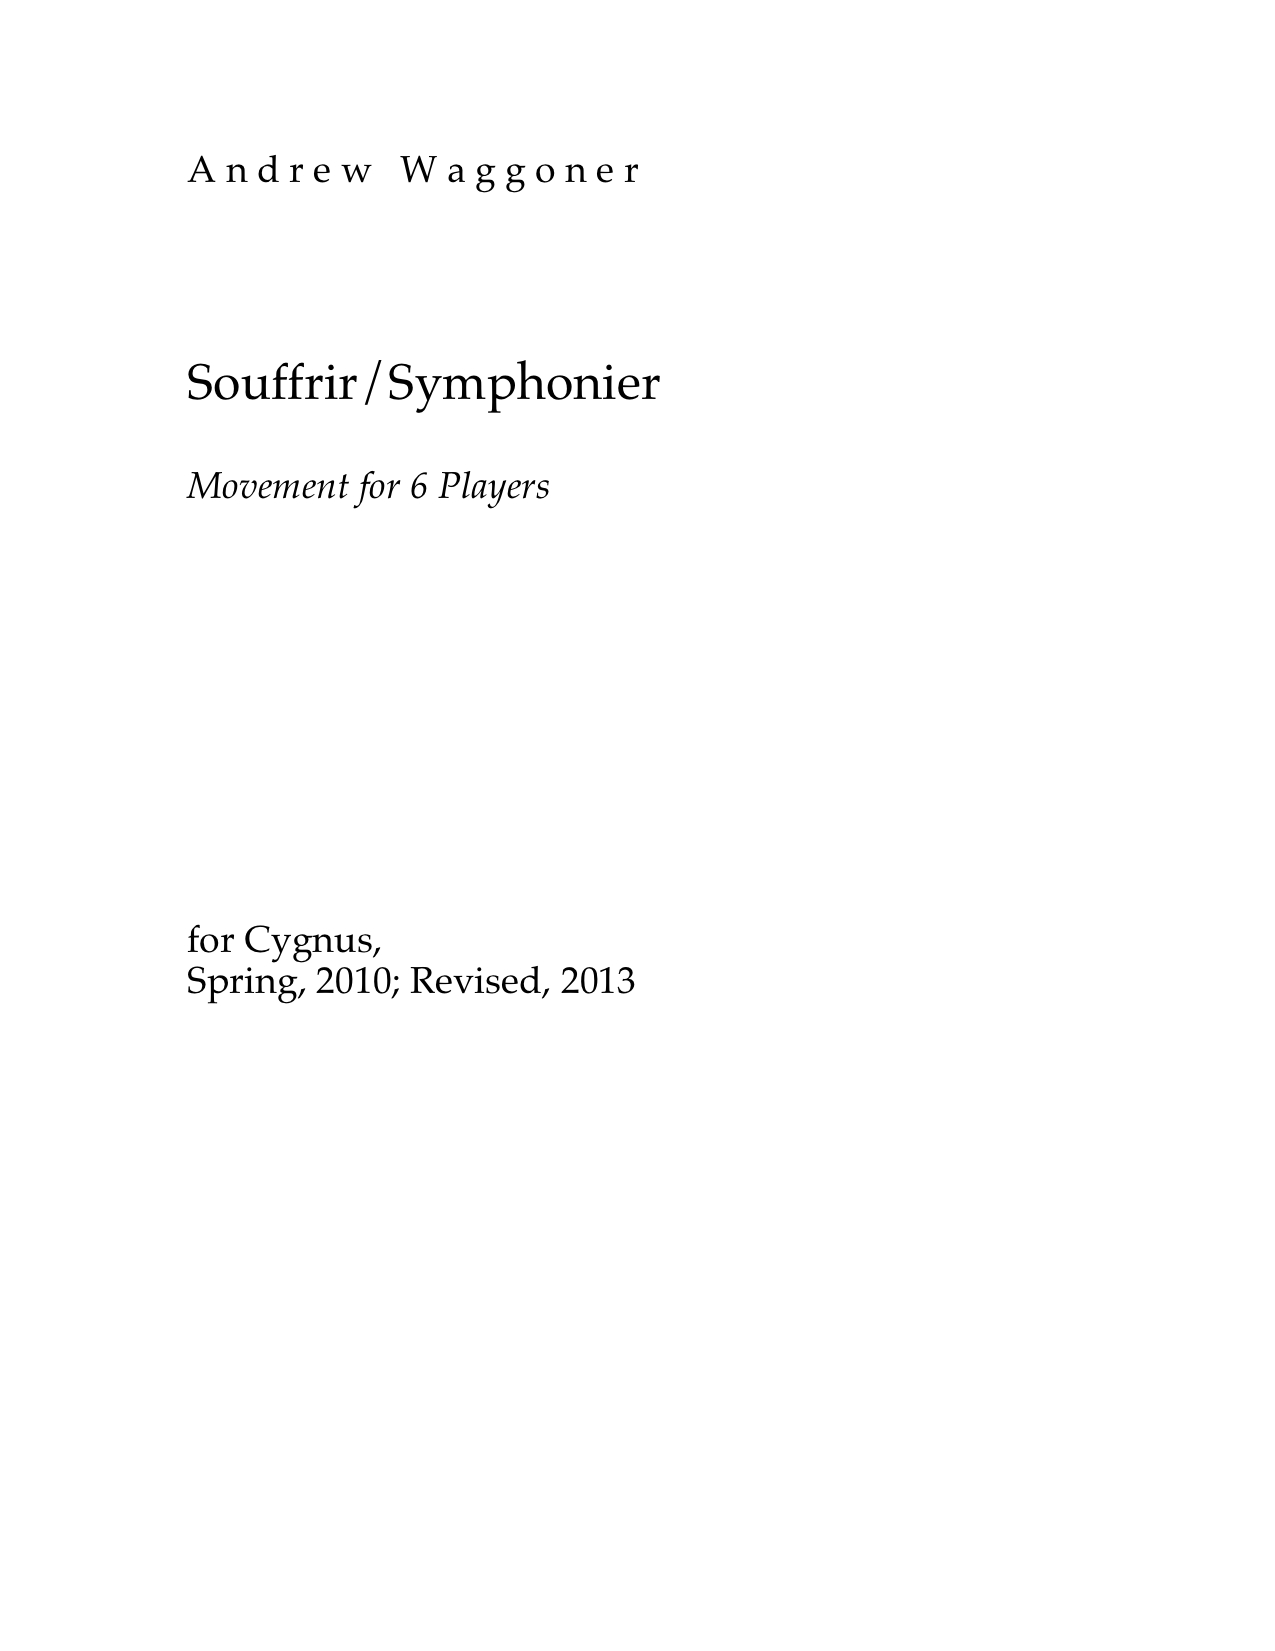 Souffrir / Symphonier Movement for 7 Players